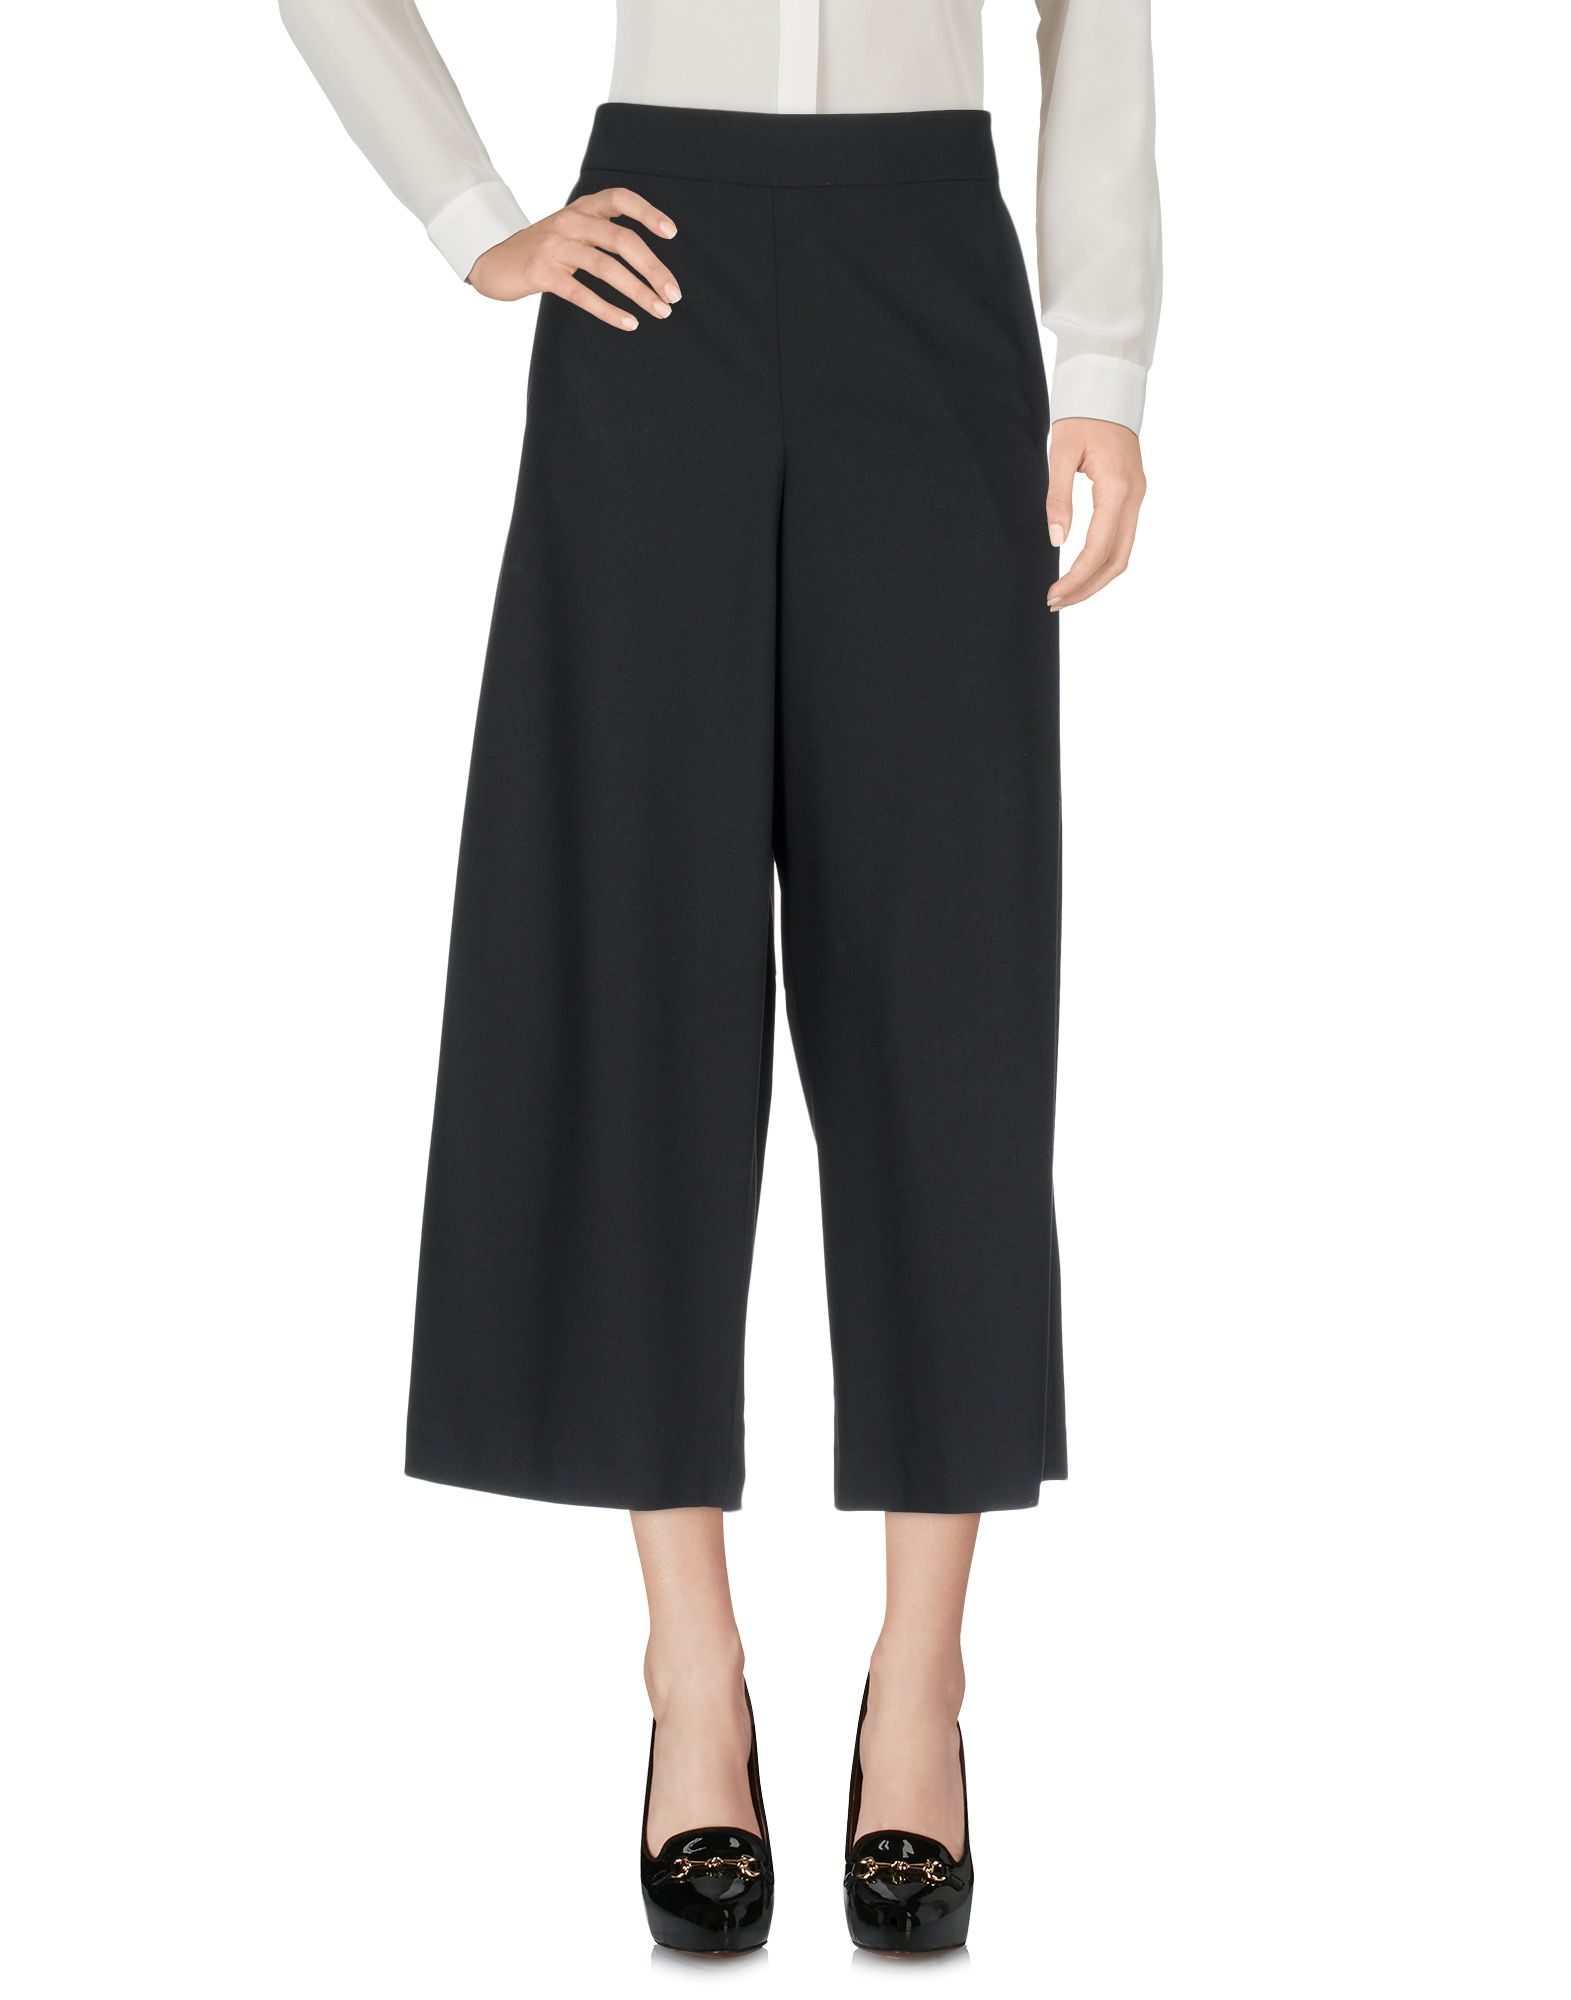 Cropped Pants & Culottes in Black